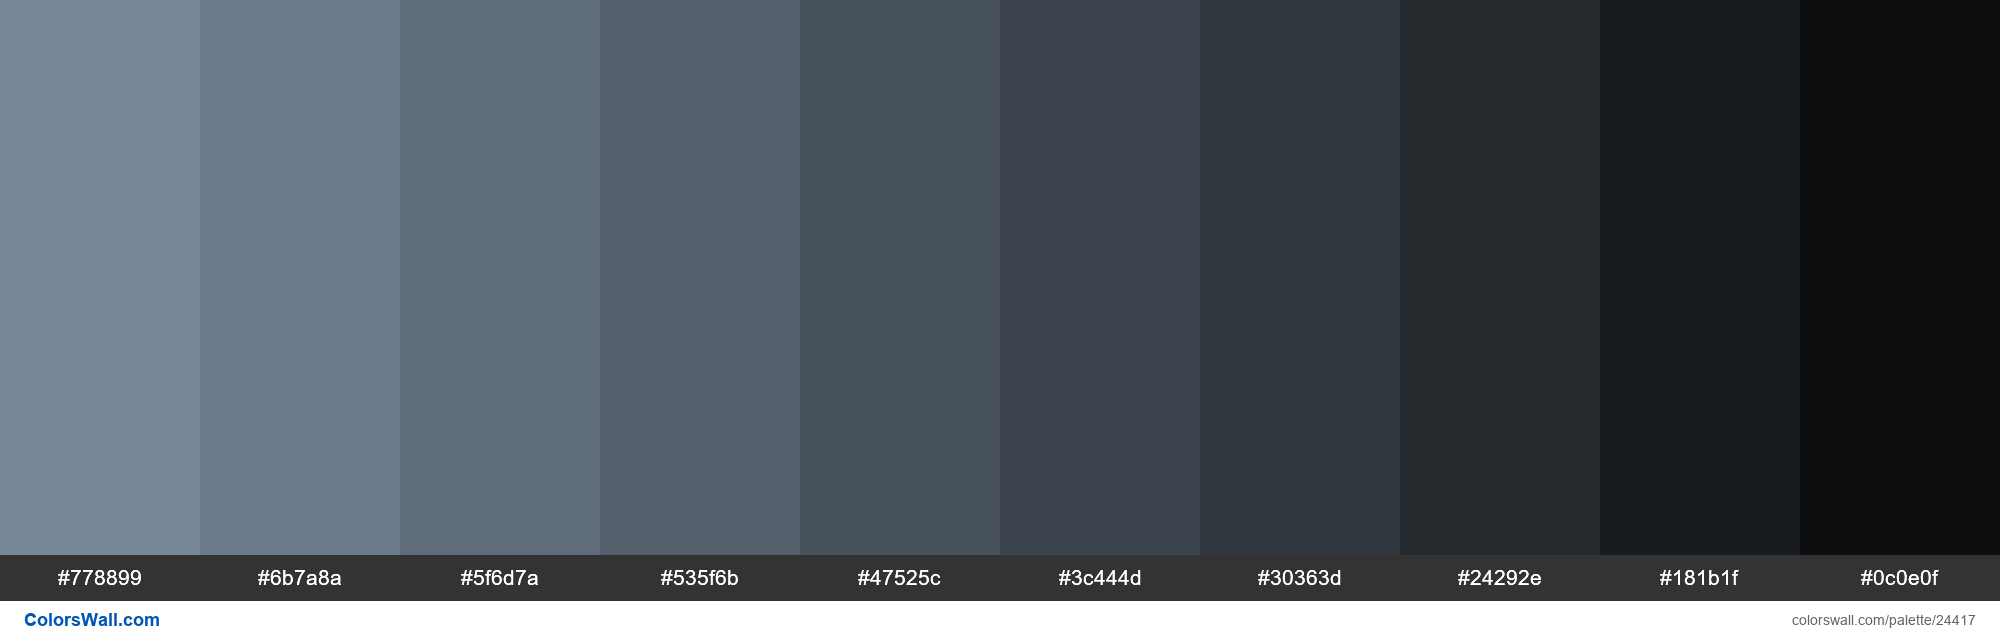 Shades of Light Slate Grey #778899 hex color - #24417